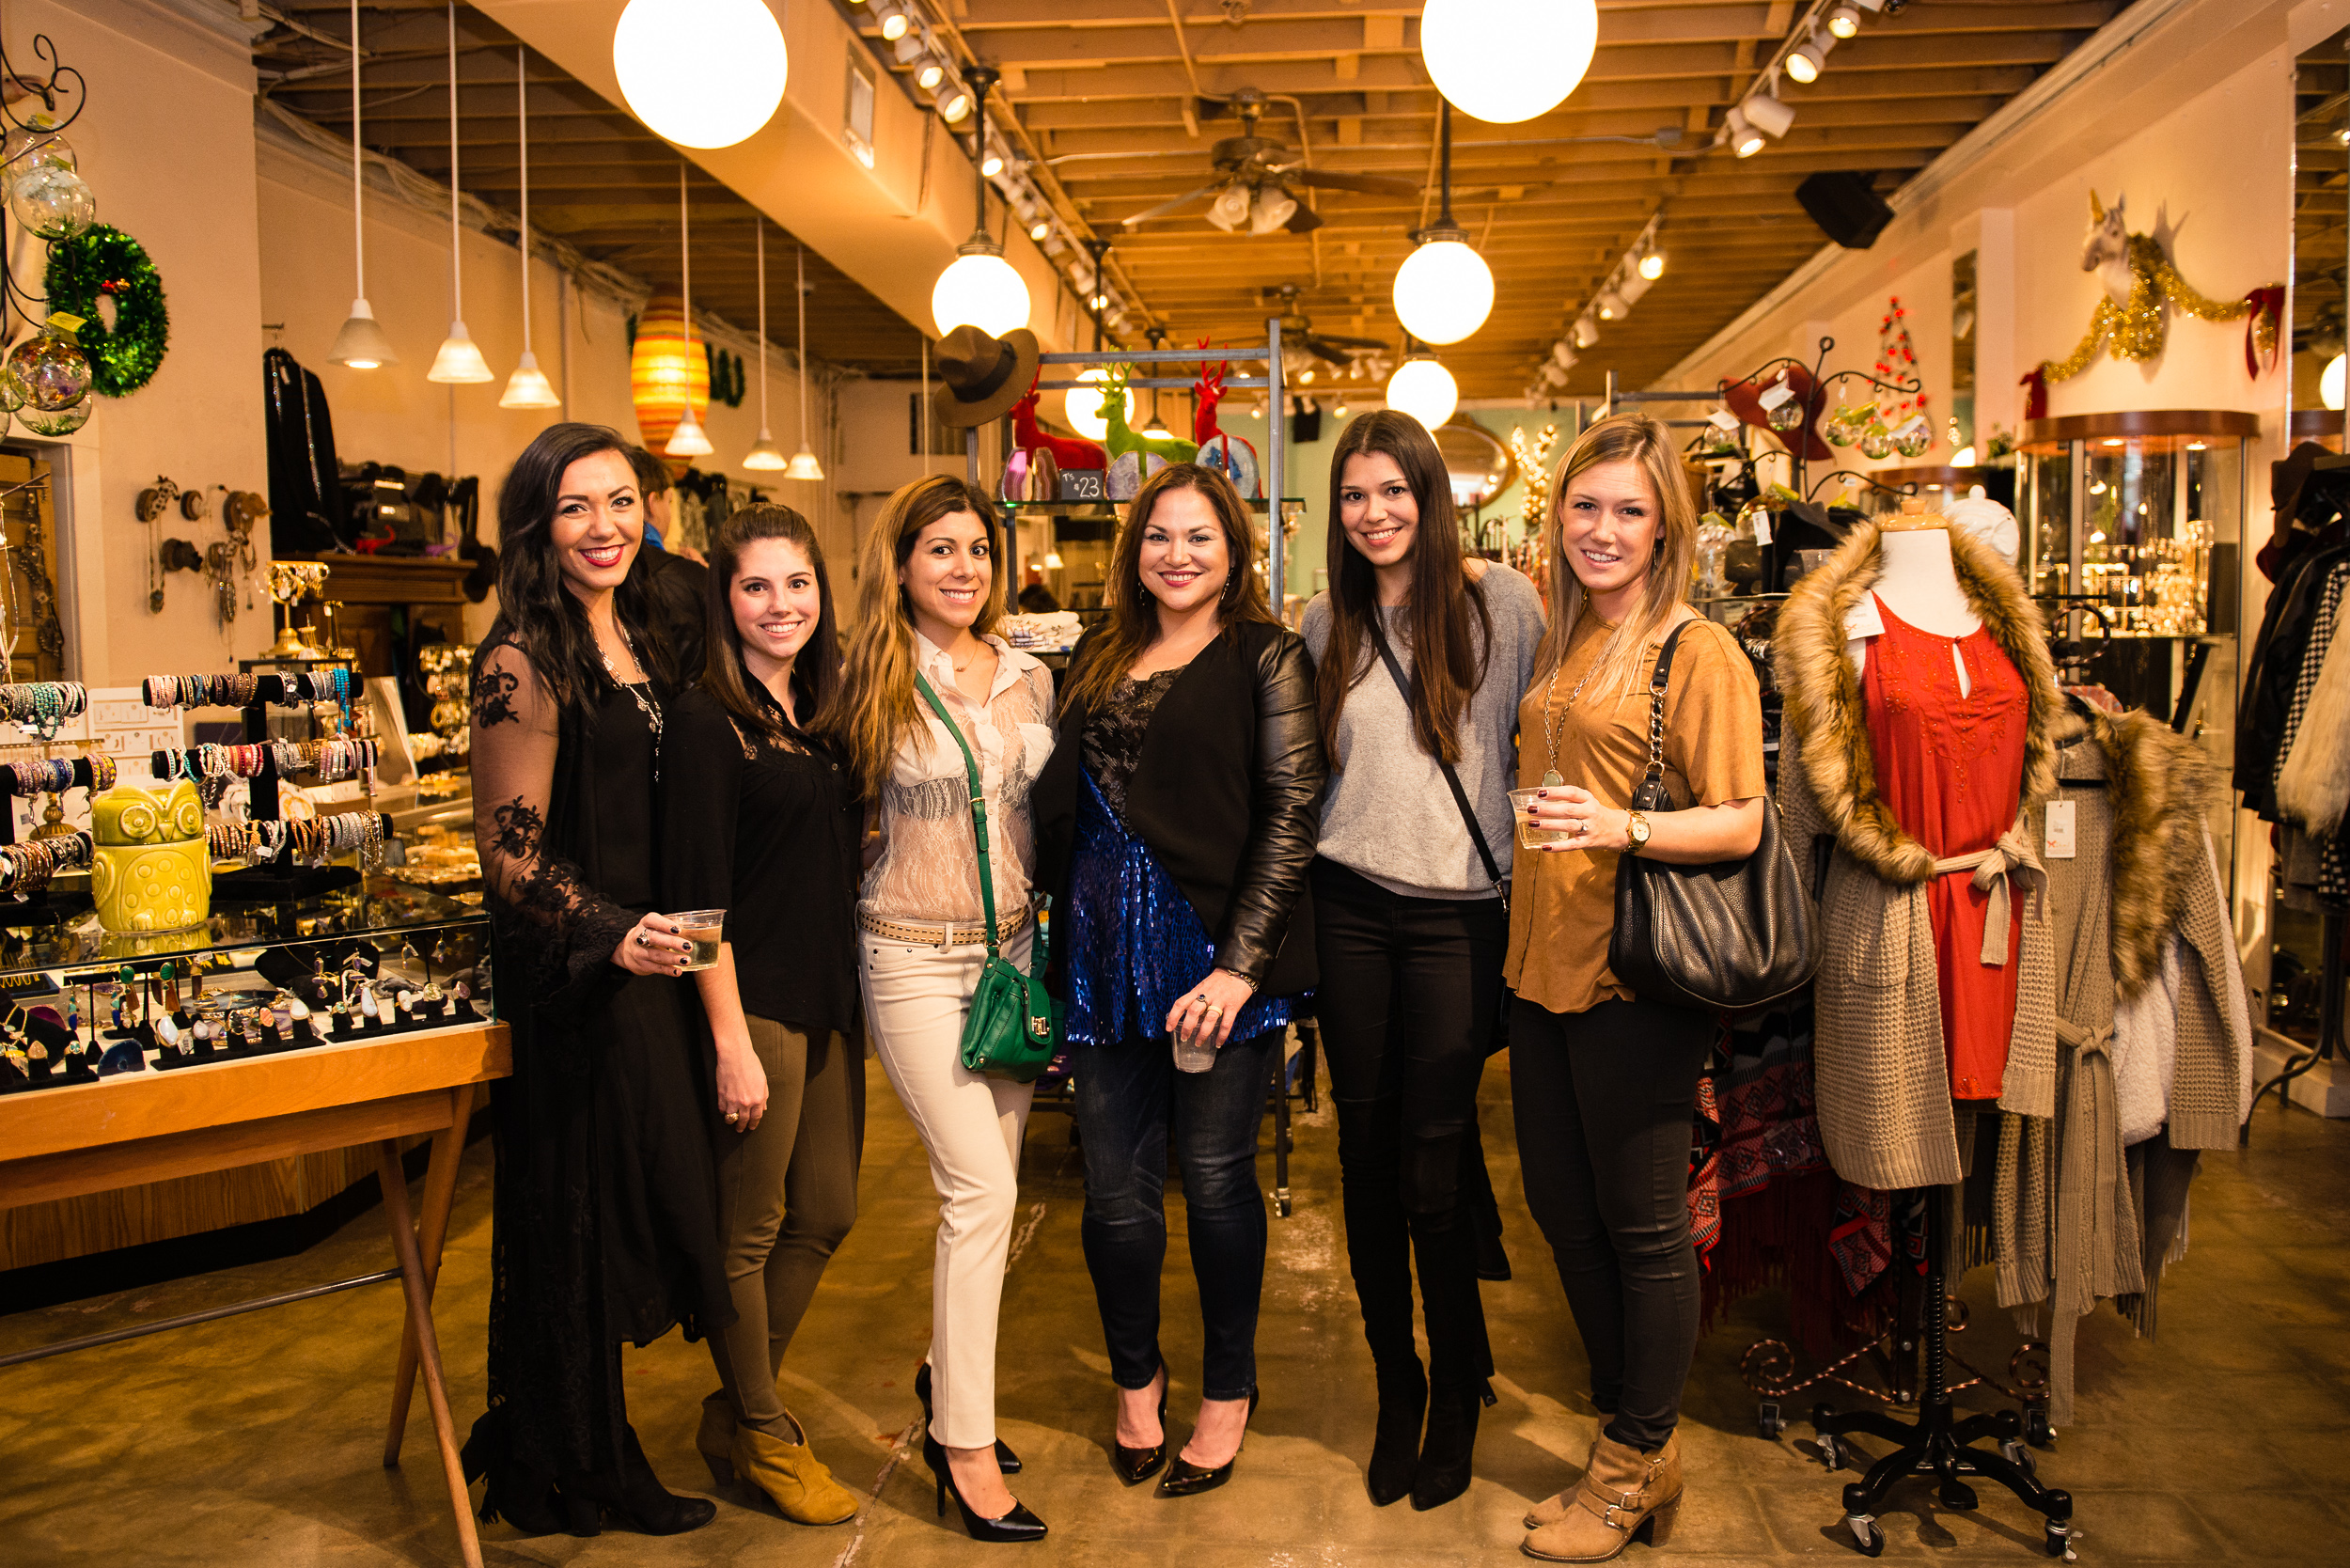 SixChel Holiday Trunk Show - Victoria Ann (Fashion Avenue East), Kimberly Burke (Little Bitty In the City), Elisa Botello (Austin Moms Blog), Dina Chávez, Betsy Martinez (Hello Tuesday), Marguerite McKenna (The Autumn Girl)_Photo Credit Peter Tung.jpg